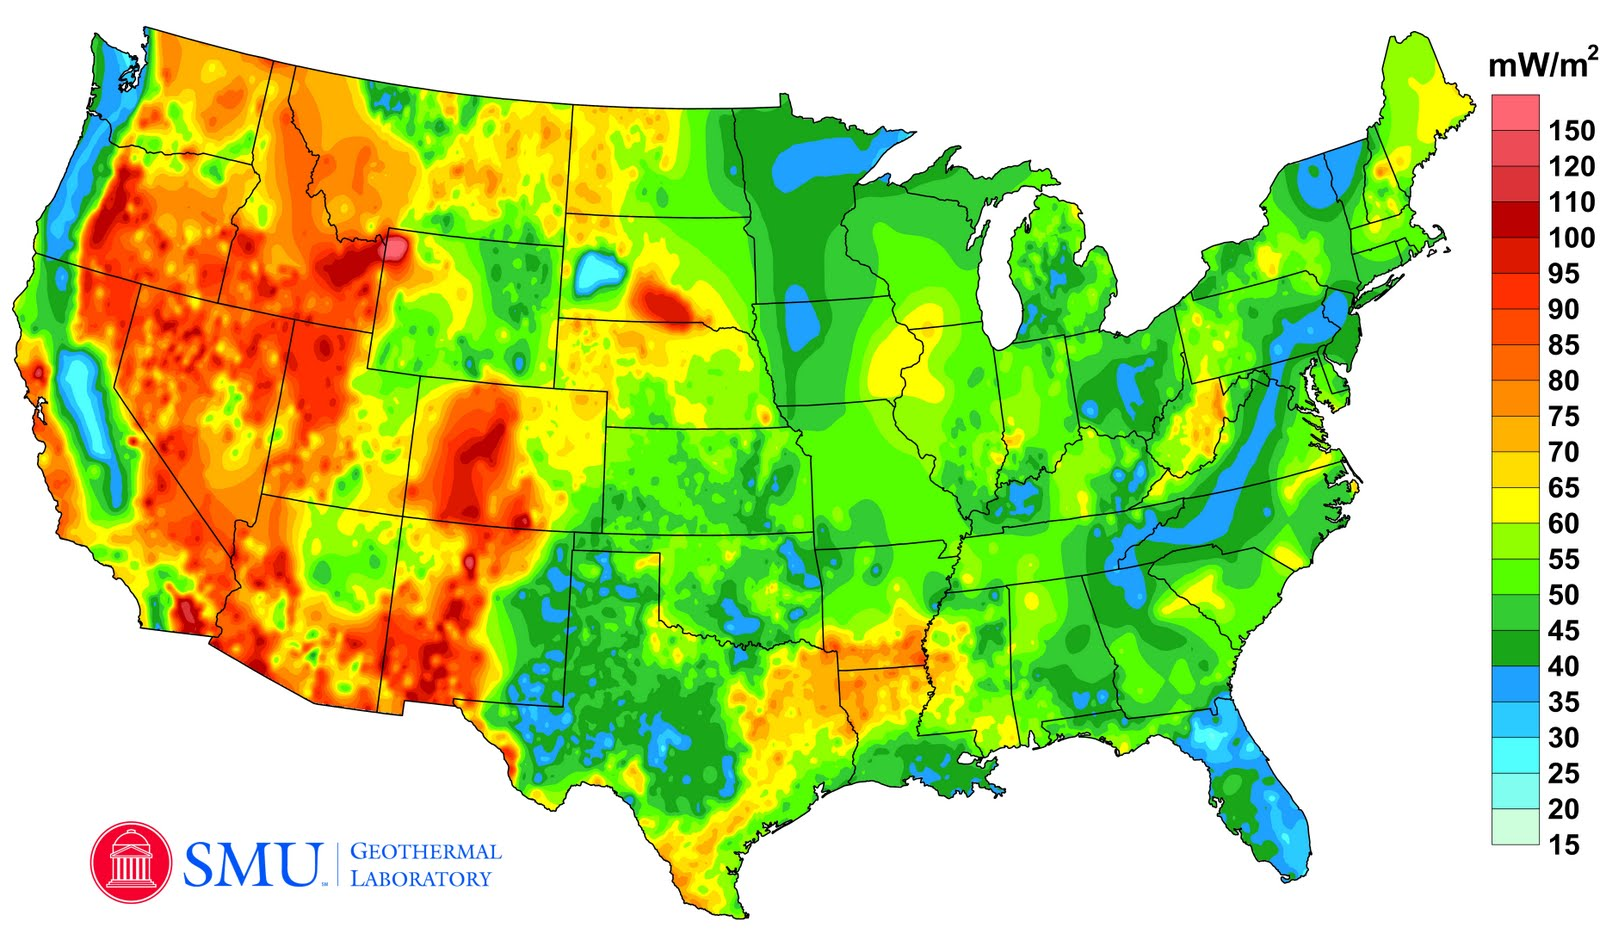 Official Googleorg Blog A New Geothermal Map Of The United States - Google map of the united states